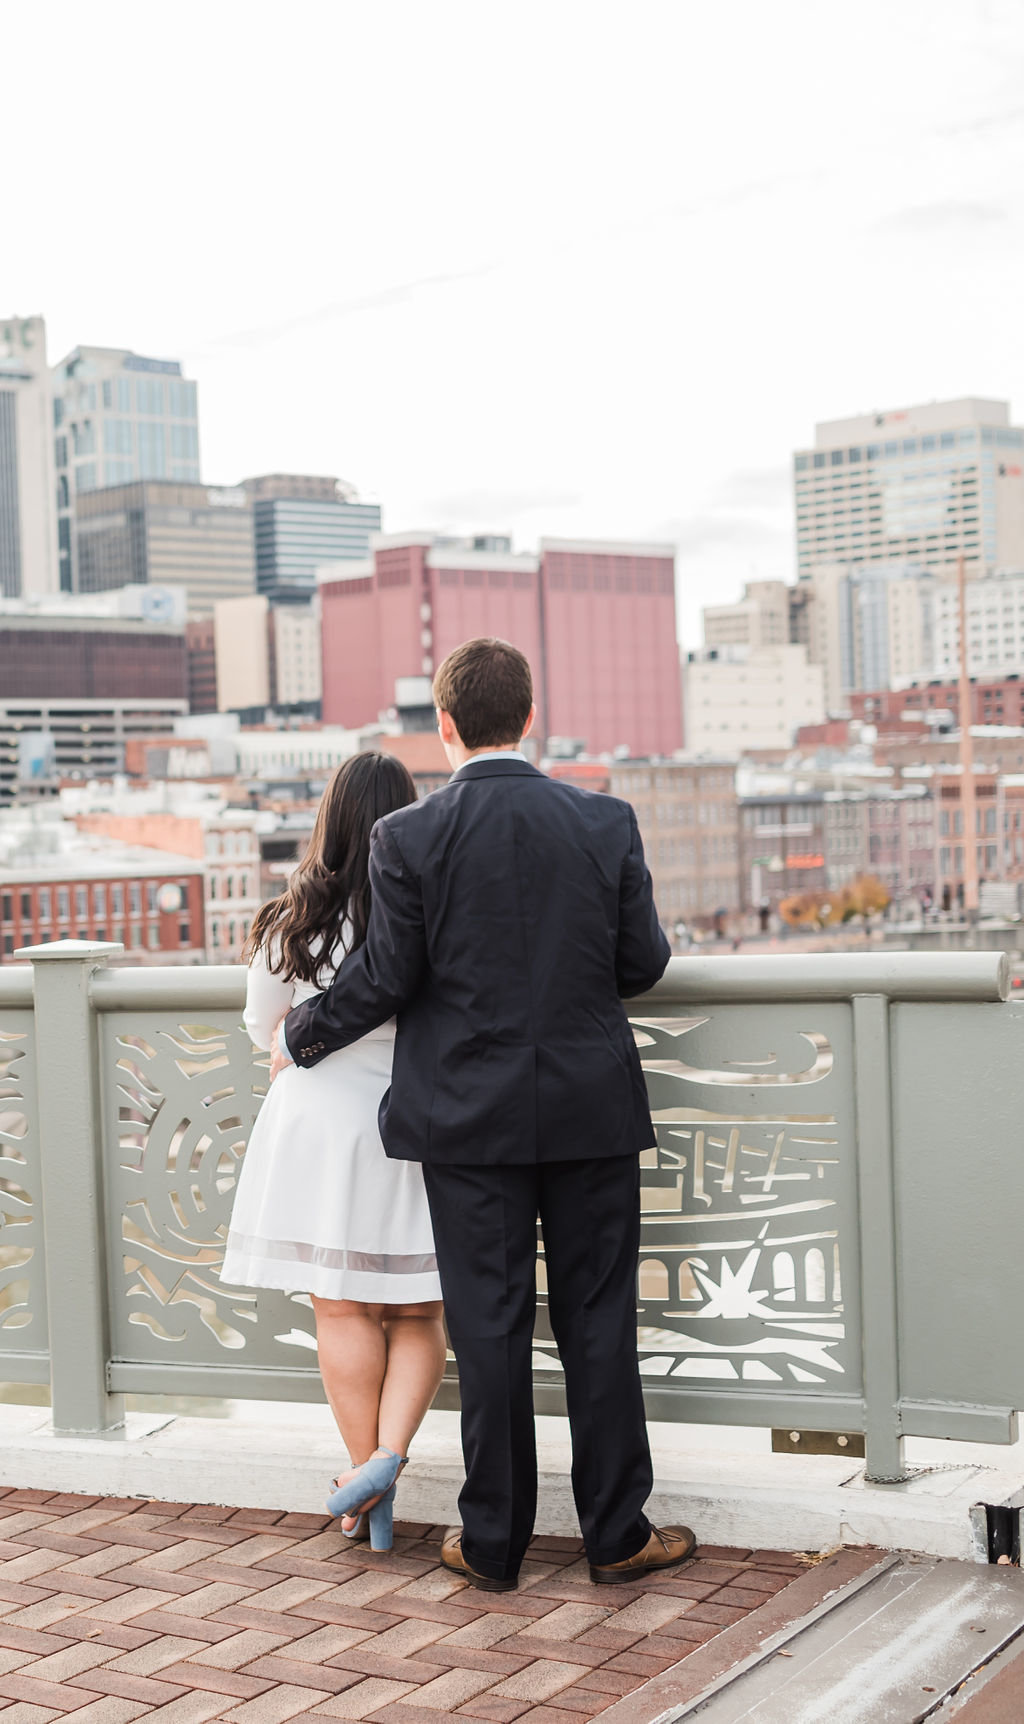 79downtownnashvilleengagement